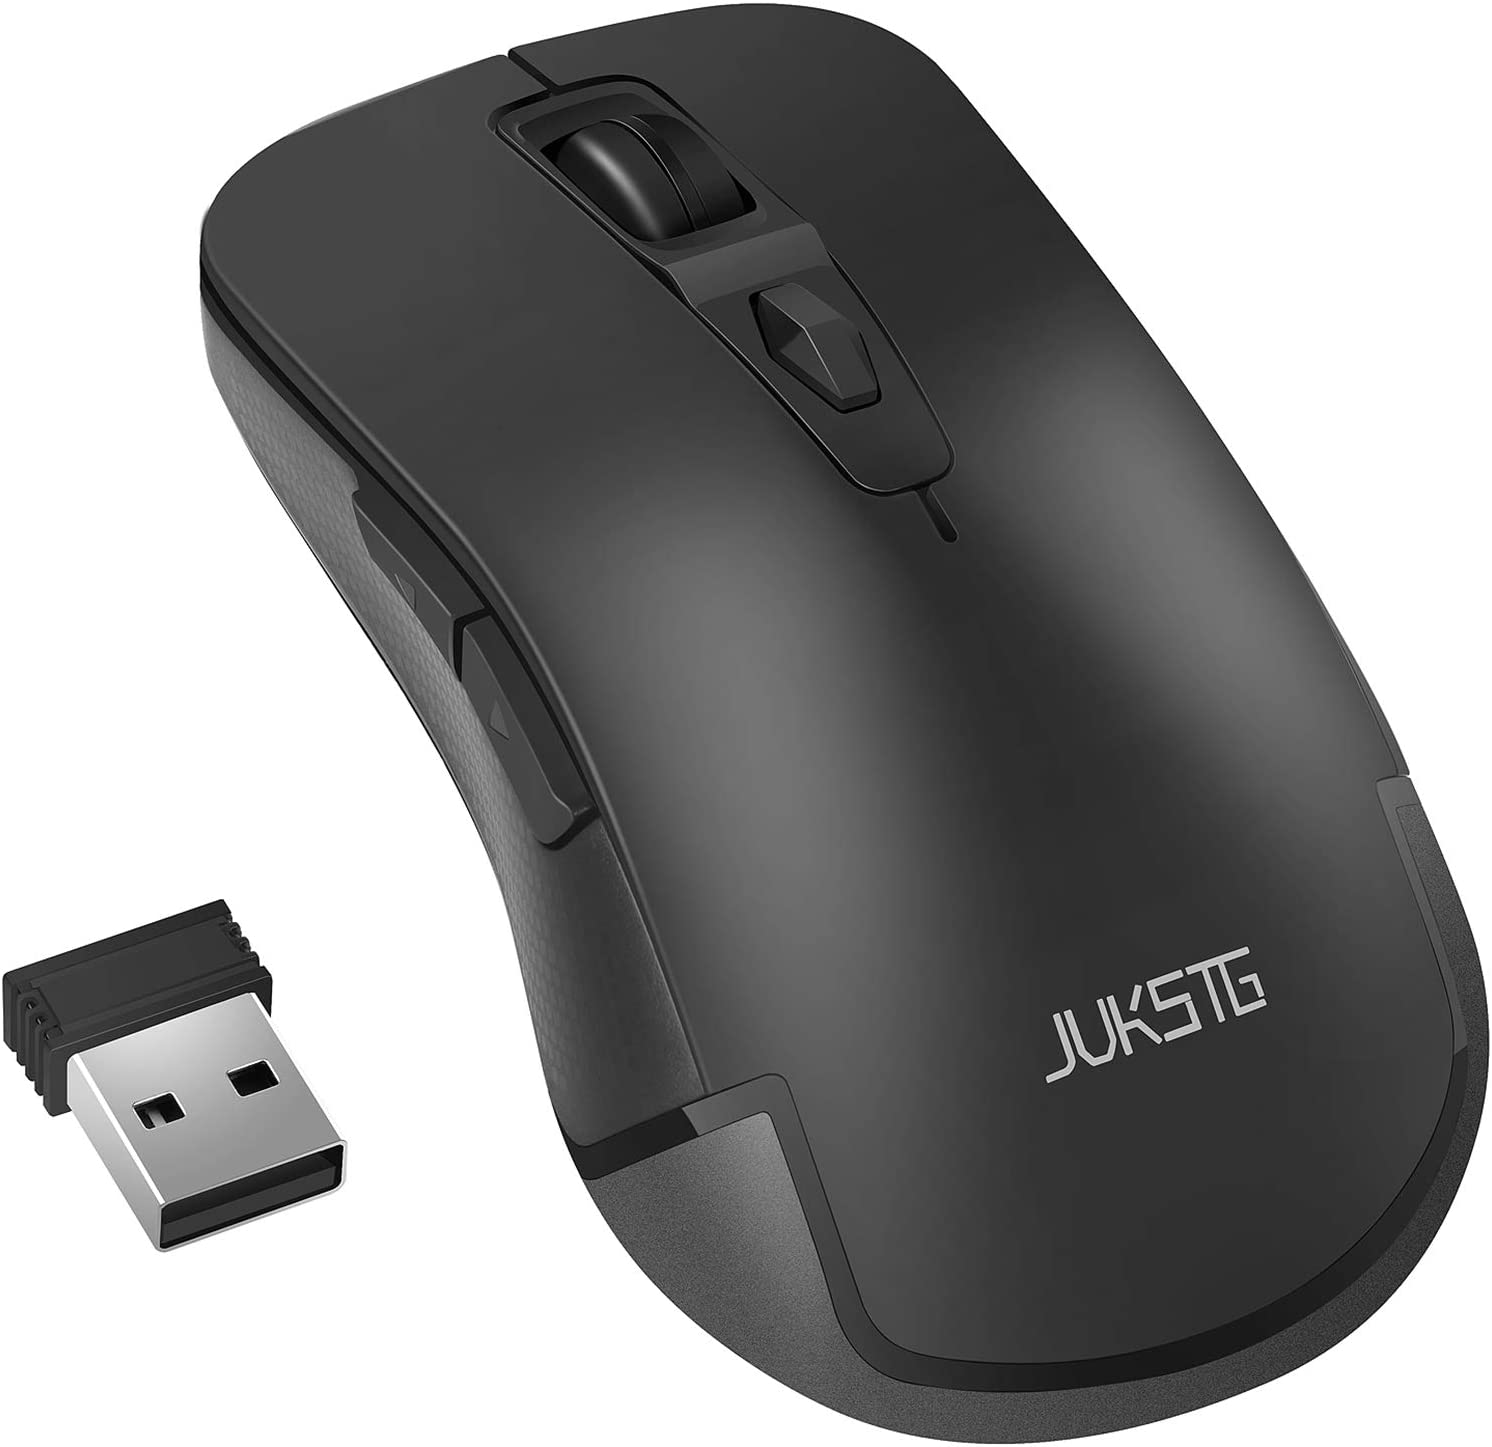 JUKSTG Wireless Mouse 2.4G Portable Ergonomic Mouse with USB Nano Receiver, 3 Adjustable DPI Levels, 6 Buttons for PC, Notebook, Laptop, Black